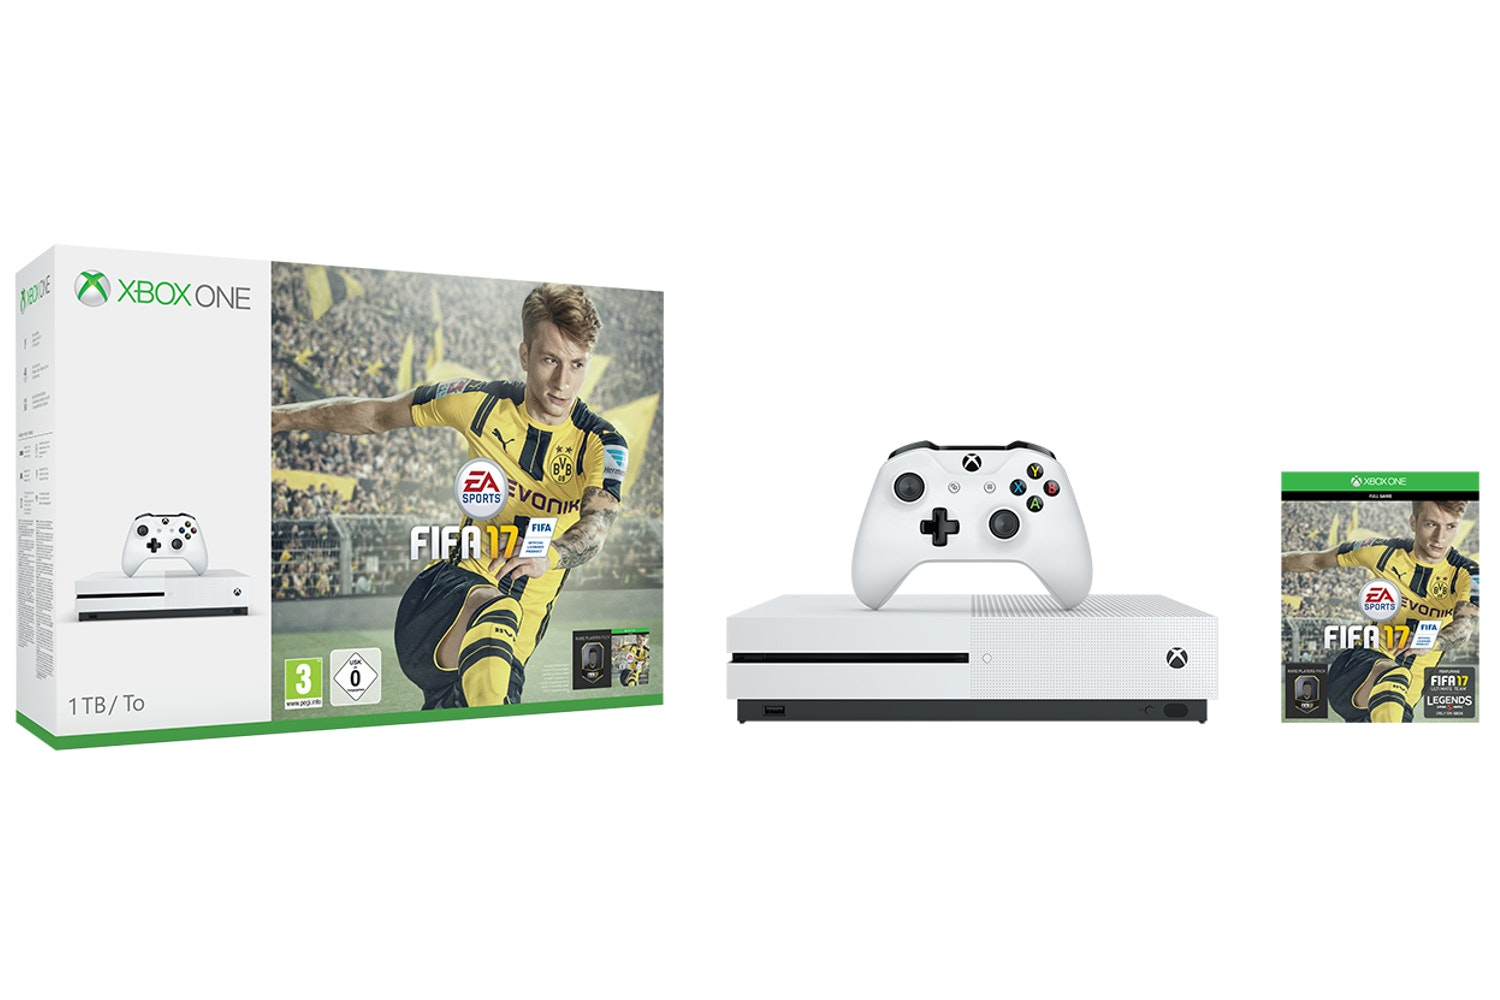 Xbox One S 1TB White | FIFA 17 Bundle